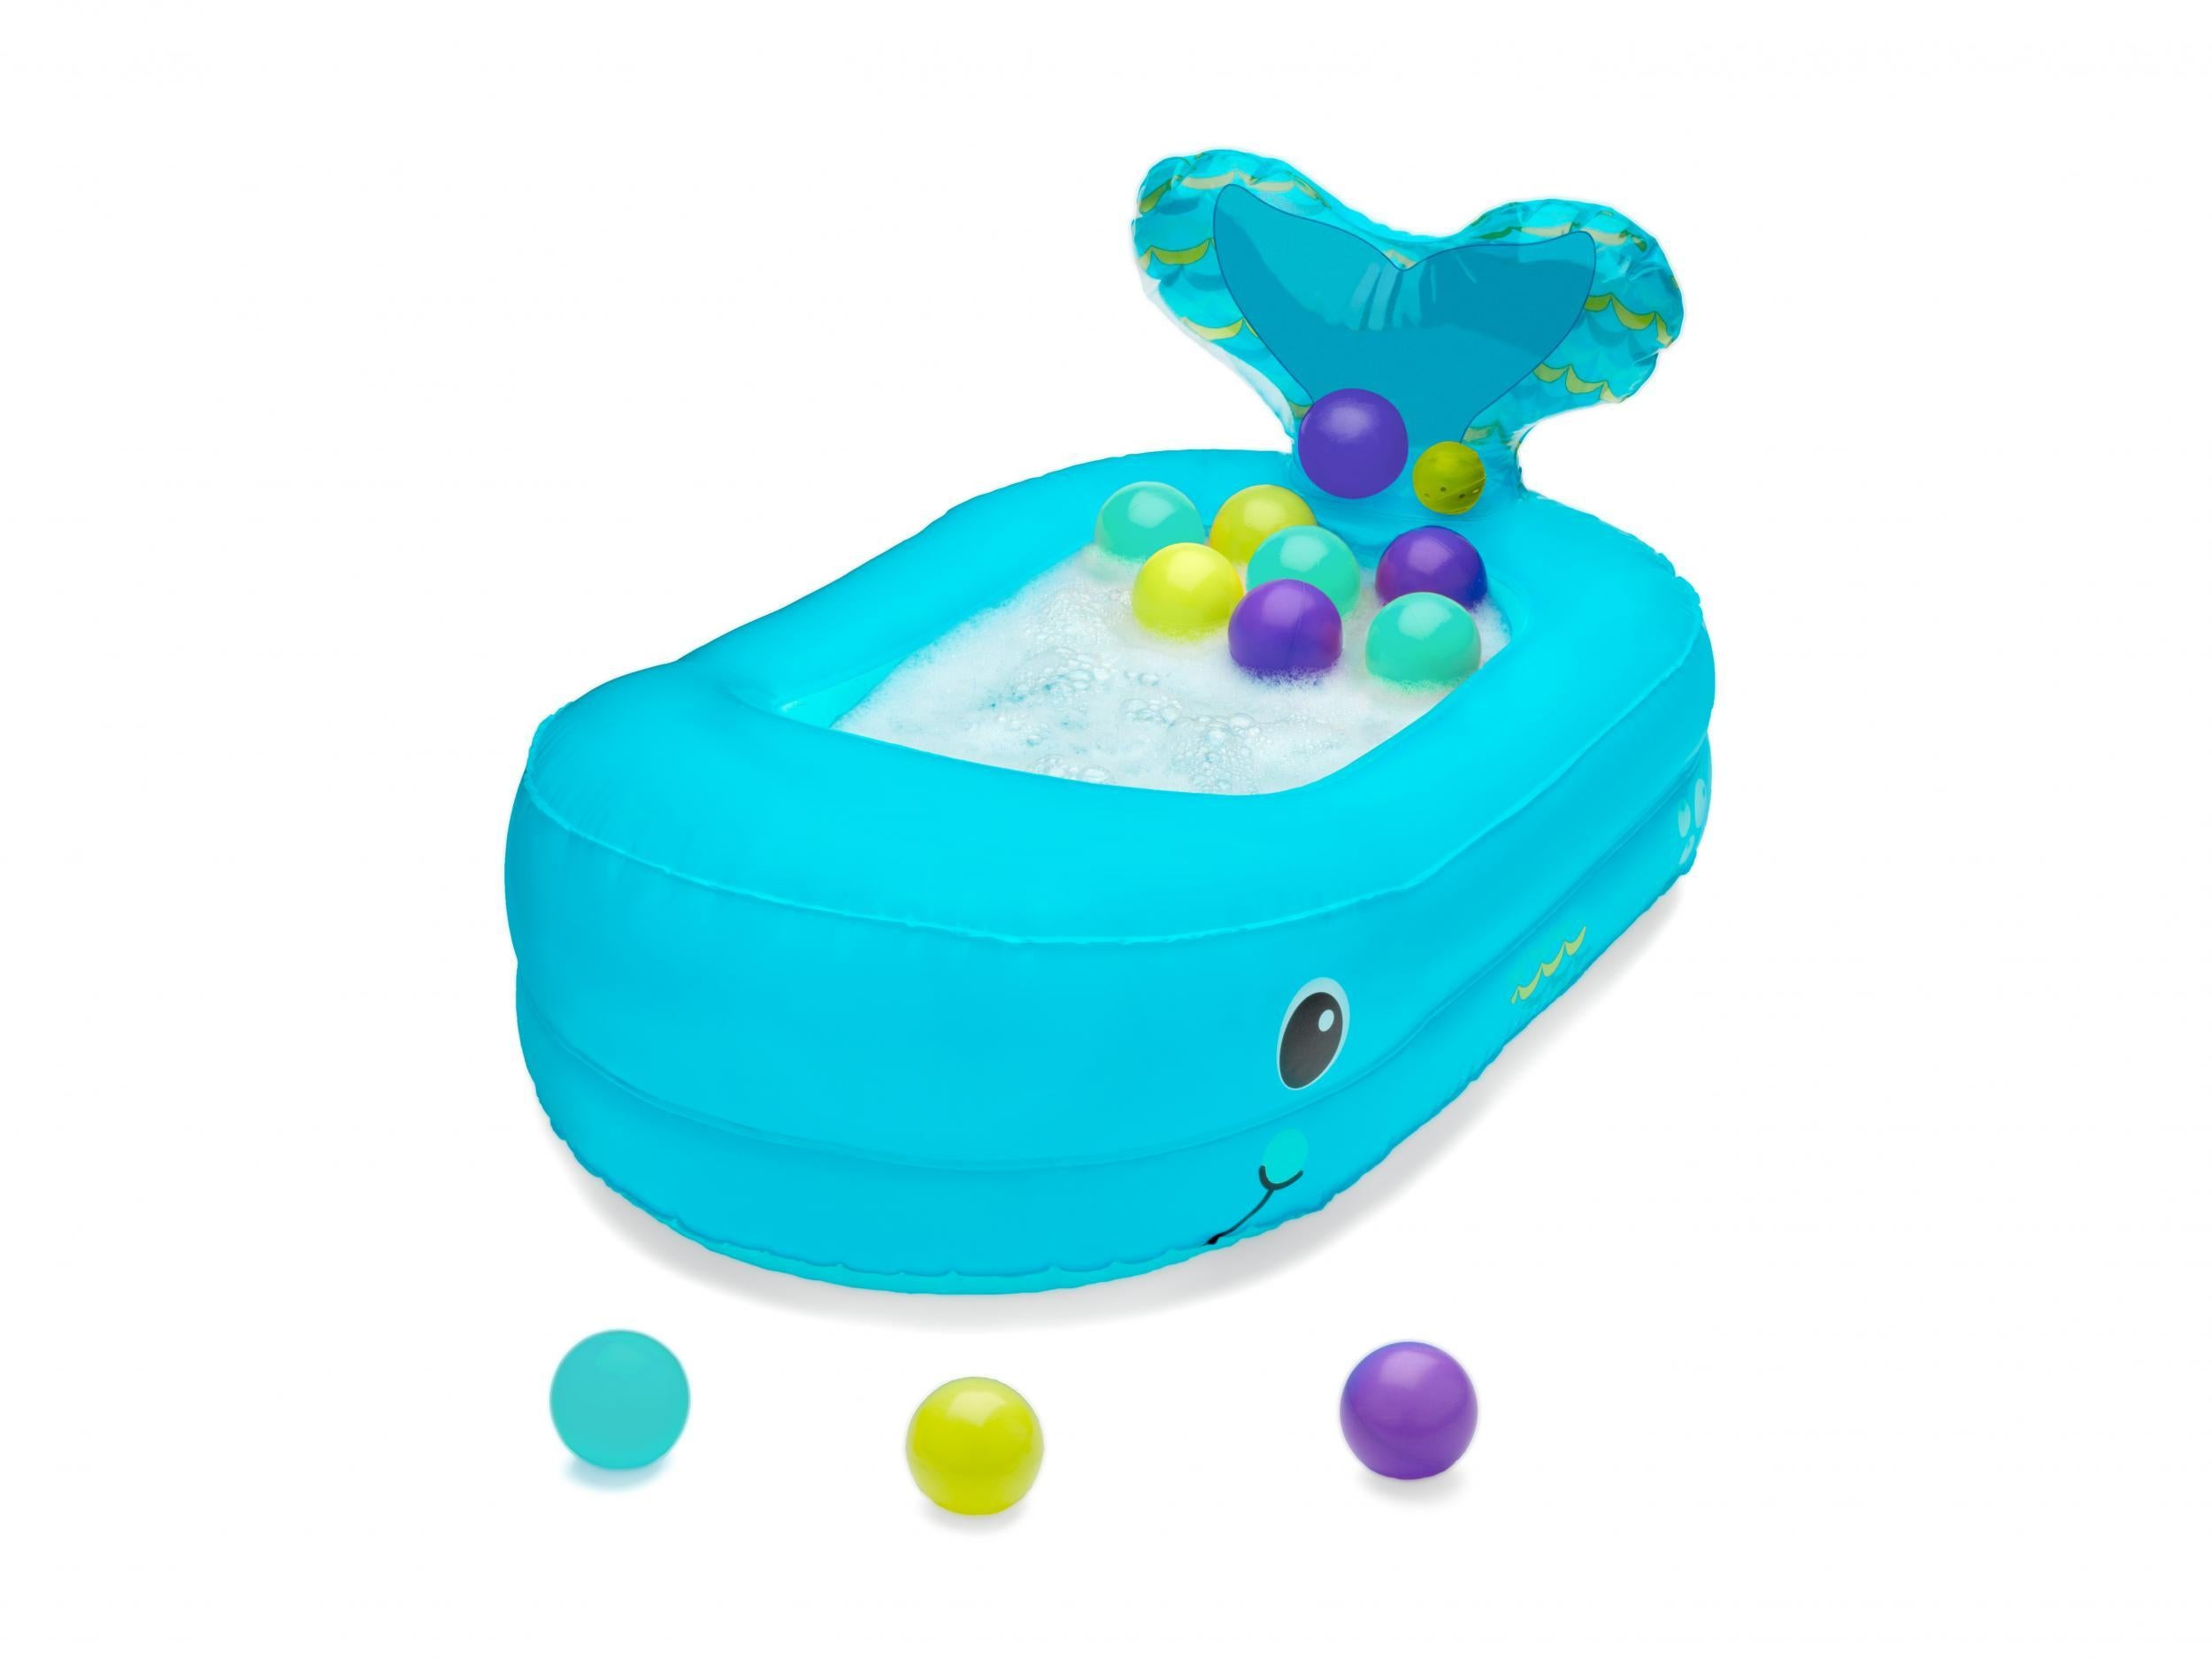 14 best bath toys for babies and toddlers | The Independent